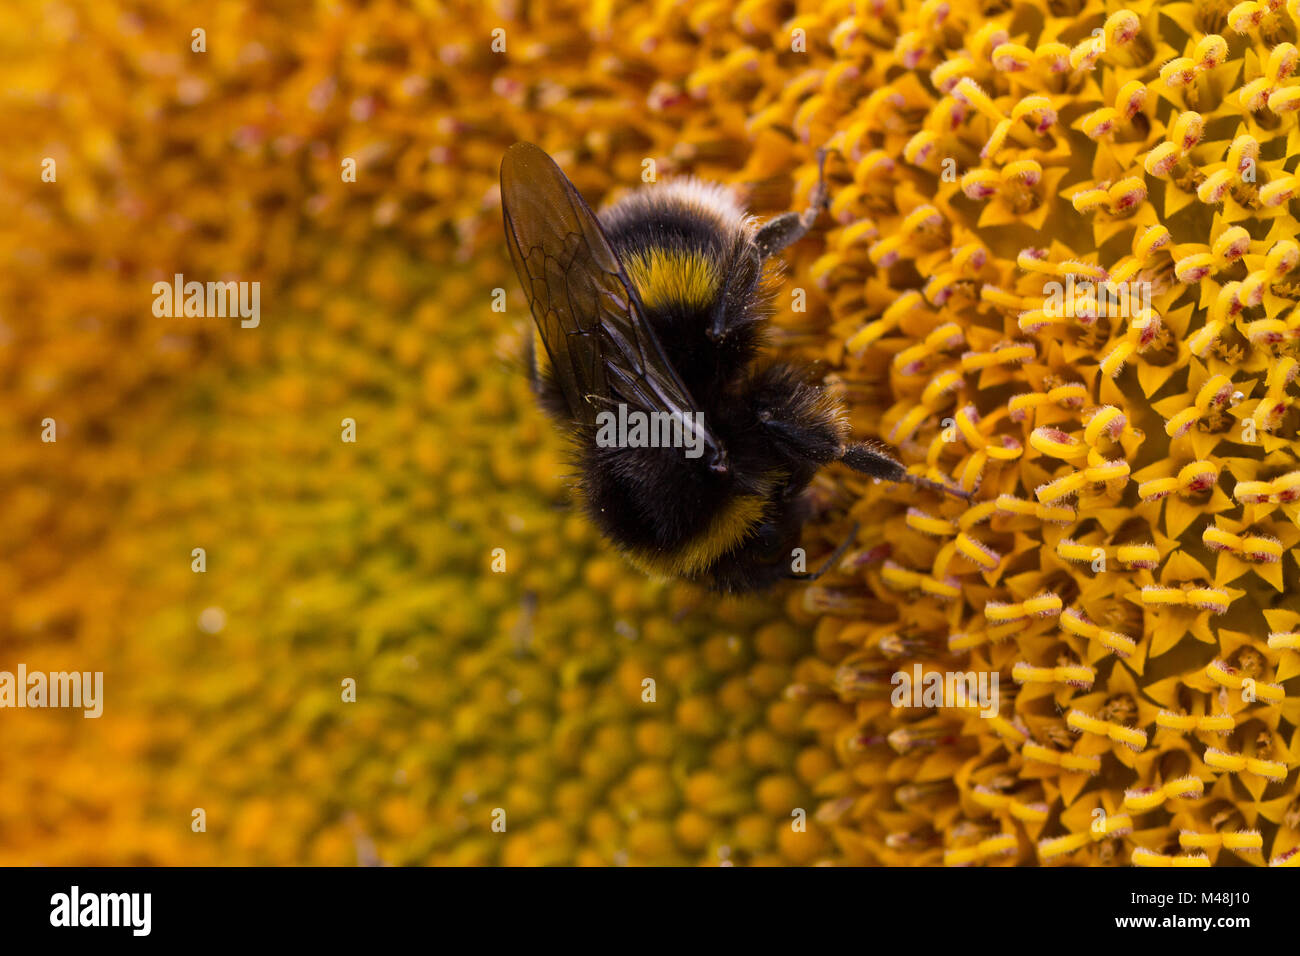 A bee feeding on the nectar of a sunflower - Stock Image